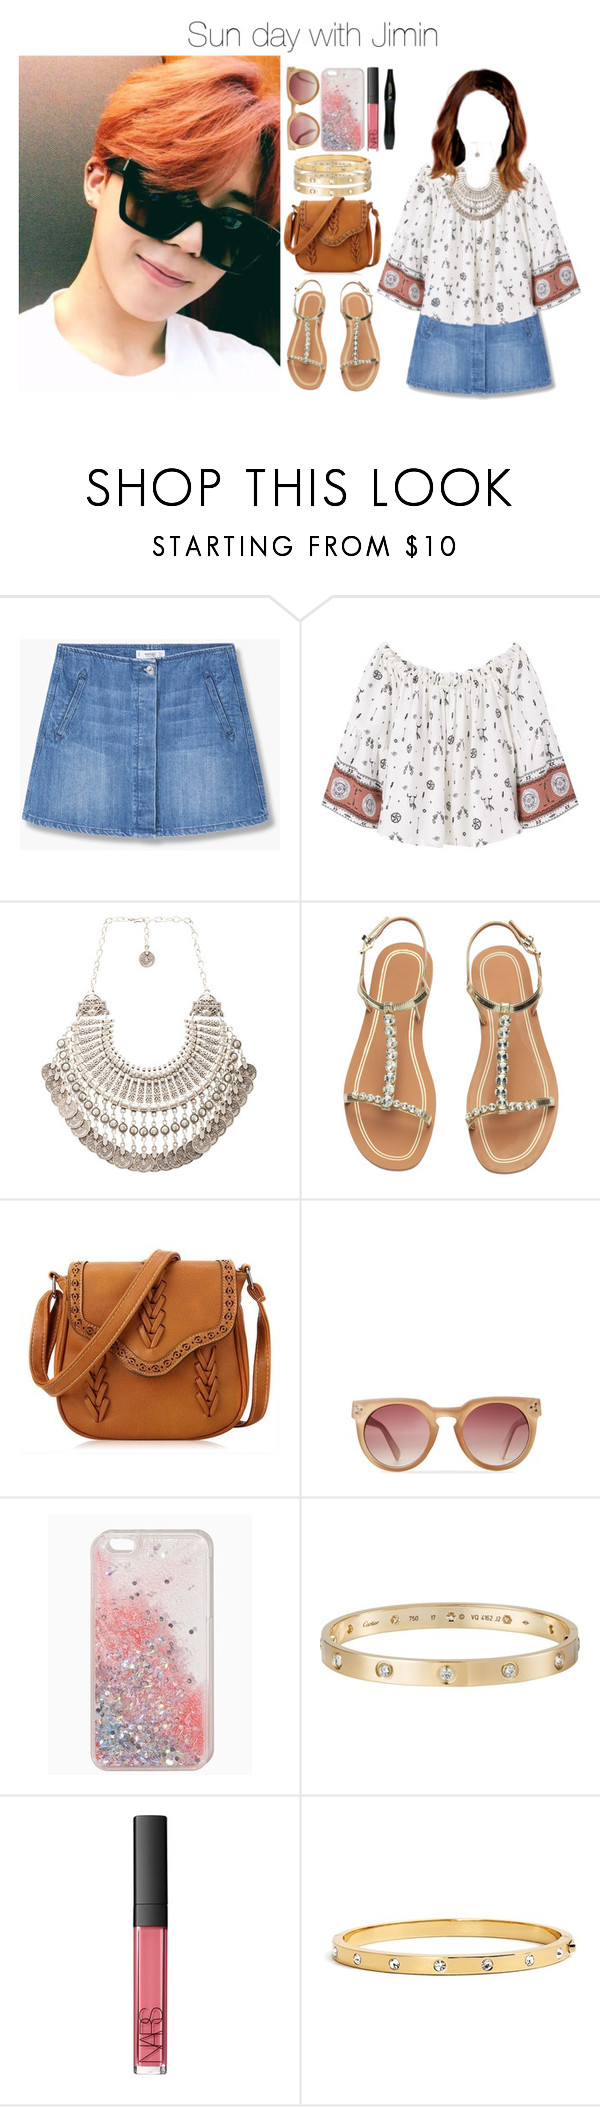 """Sun day with Jimin"" by yonce4park ❤ liked on Polyvore featuring MANGO, Natalie B, H&M, Cartier, NARS Cosmetics, Kate Spade, Lancôme, kpop, bts and jimin"